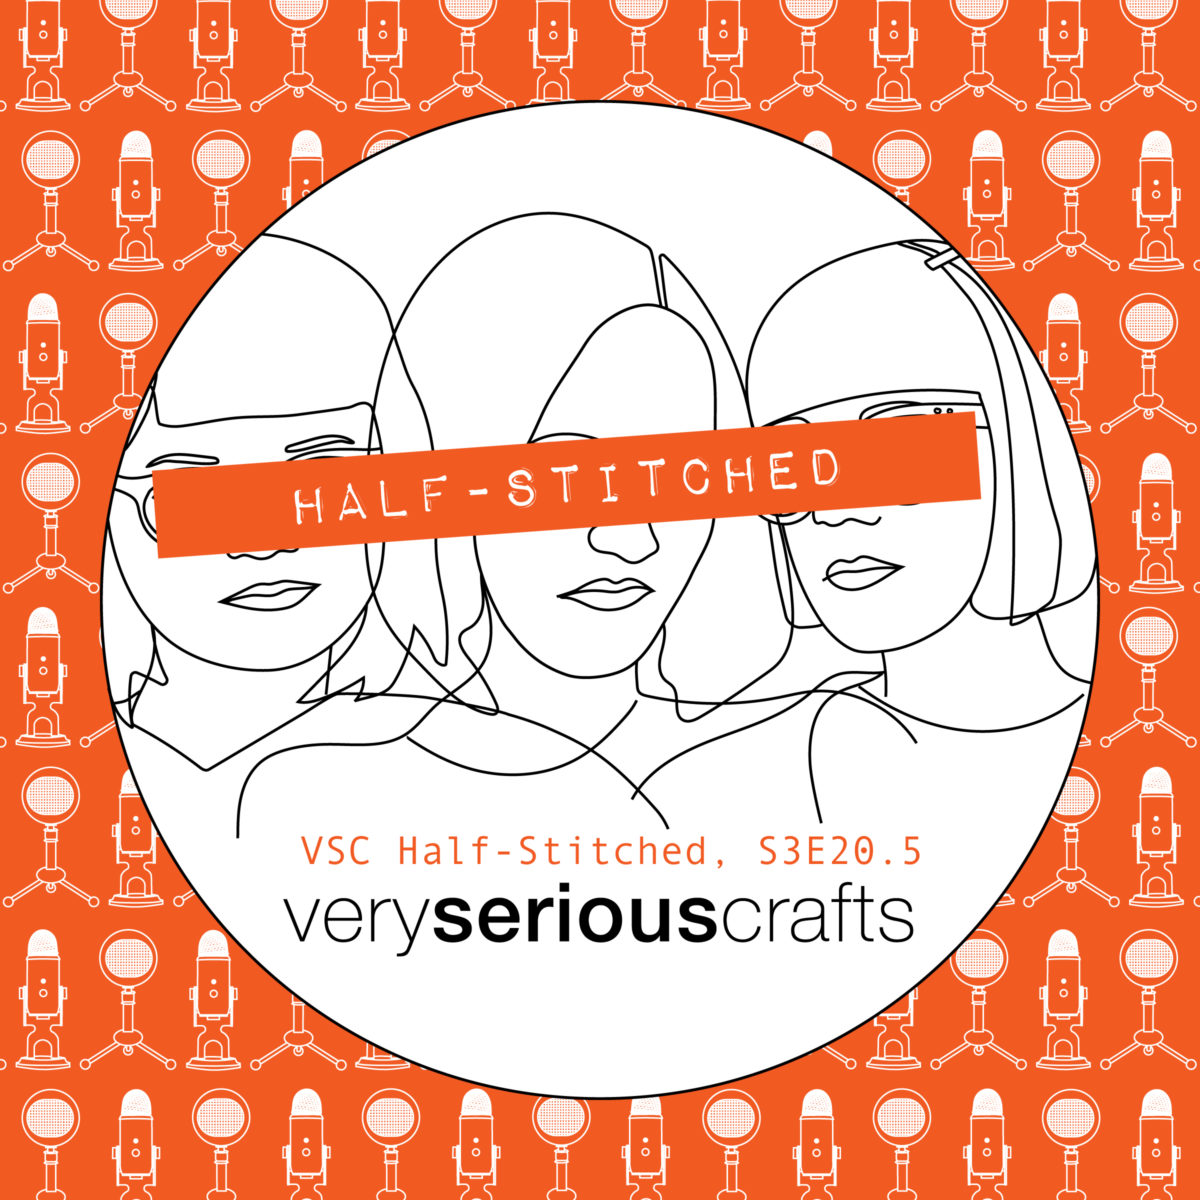 The Very Serious Crafts Podcast, Patreon Half-Stitched Episode S3E20.5